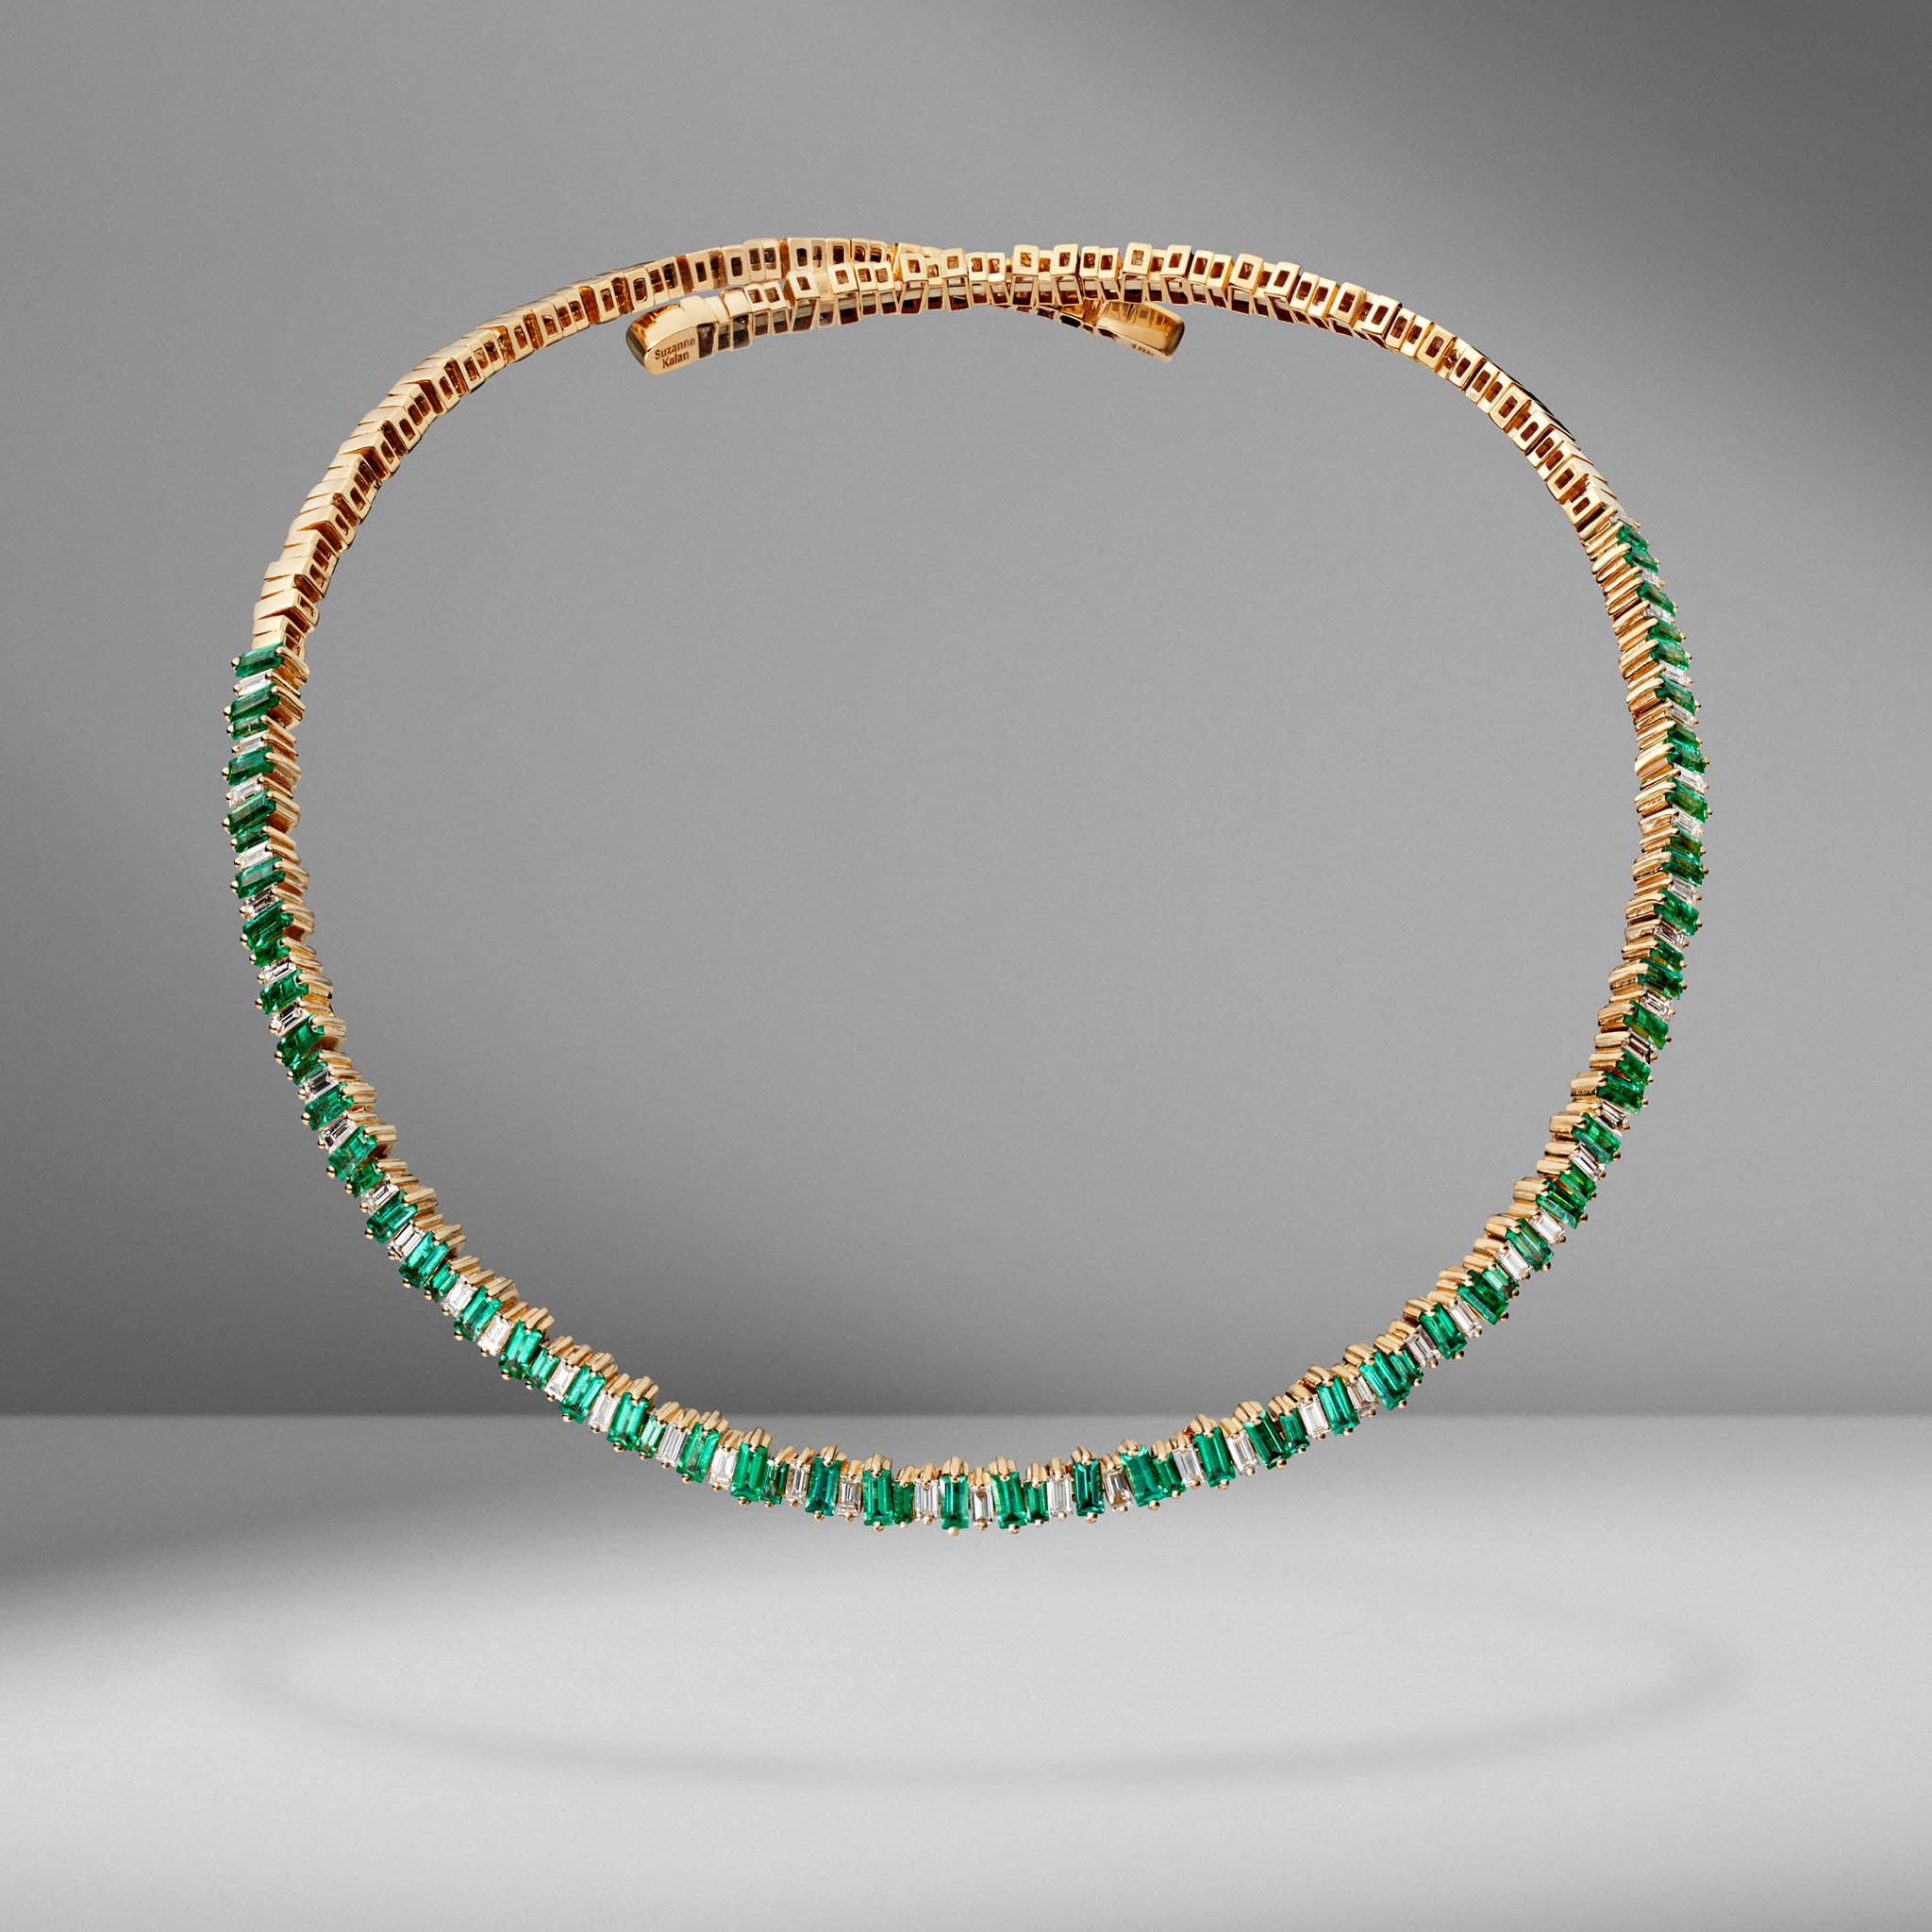 Emerald & Diamond Firework Collar Necklace